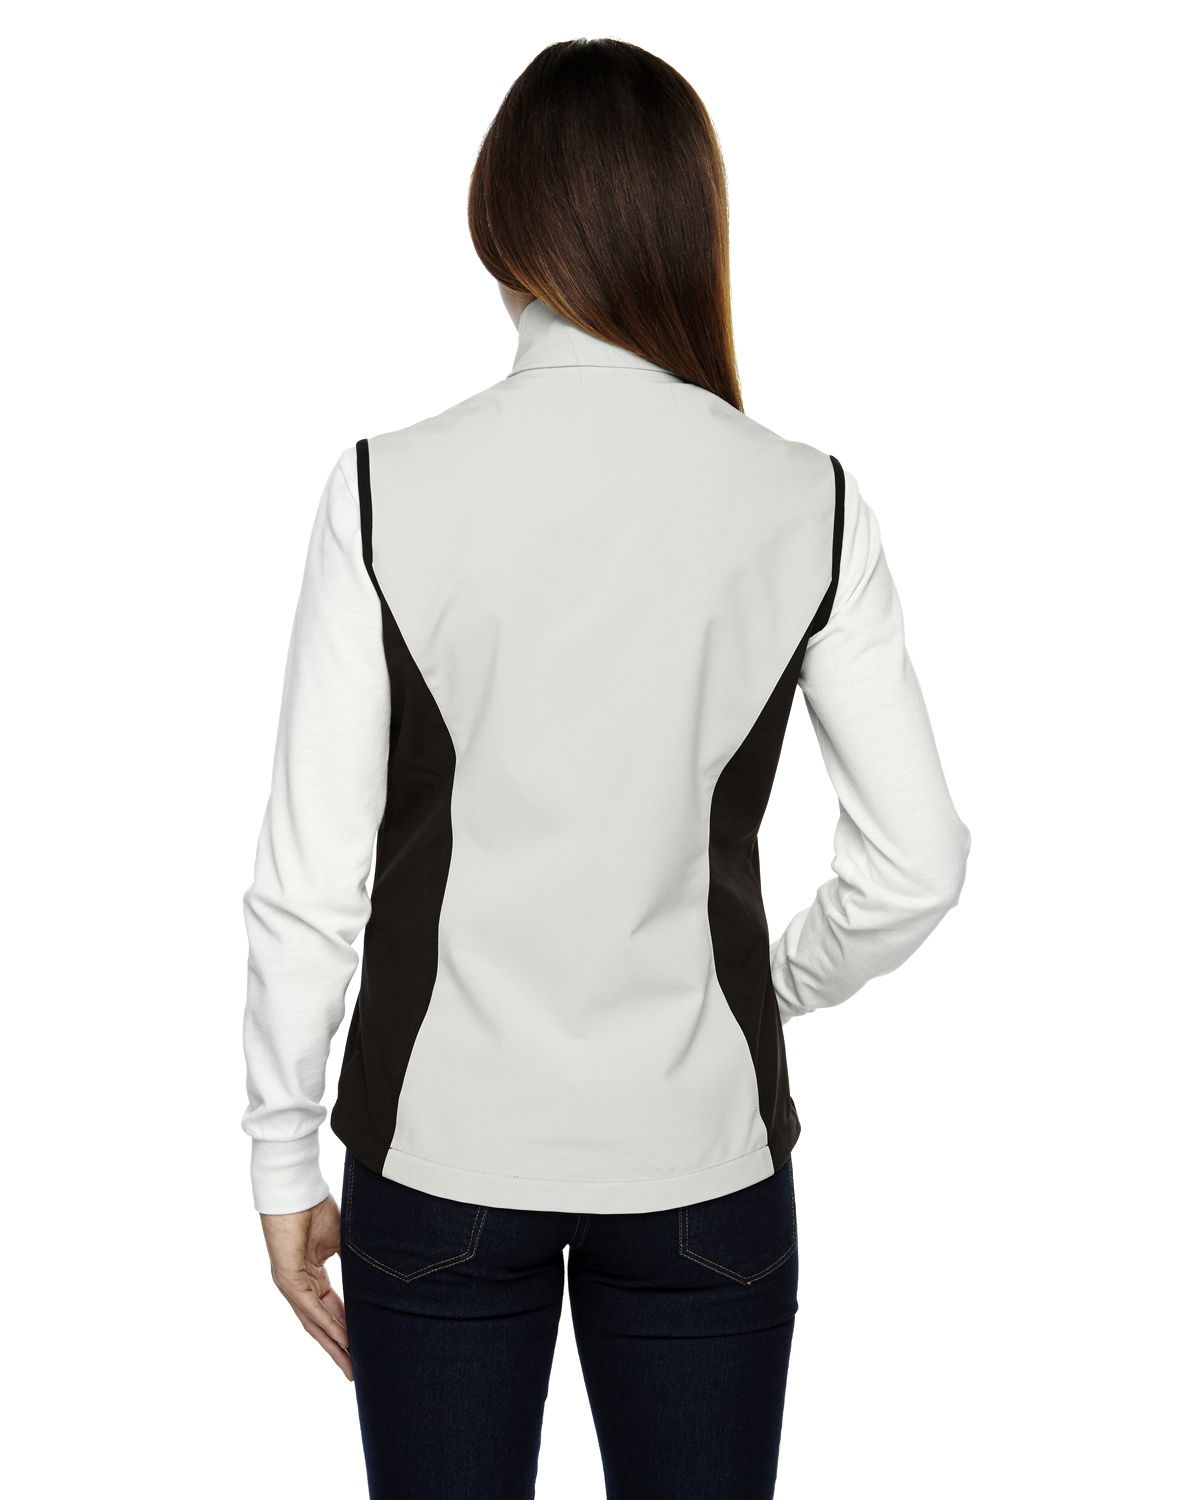 Ash City Ladies 3-Layer Soft Shell Performance Stretch Vest